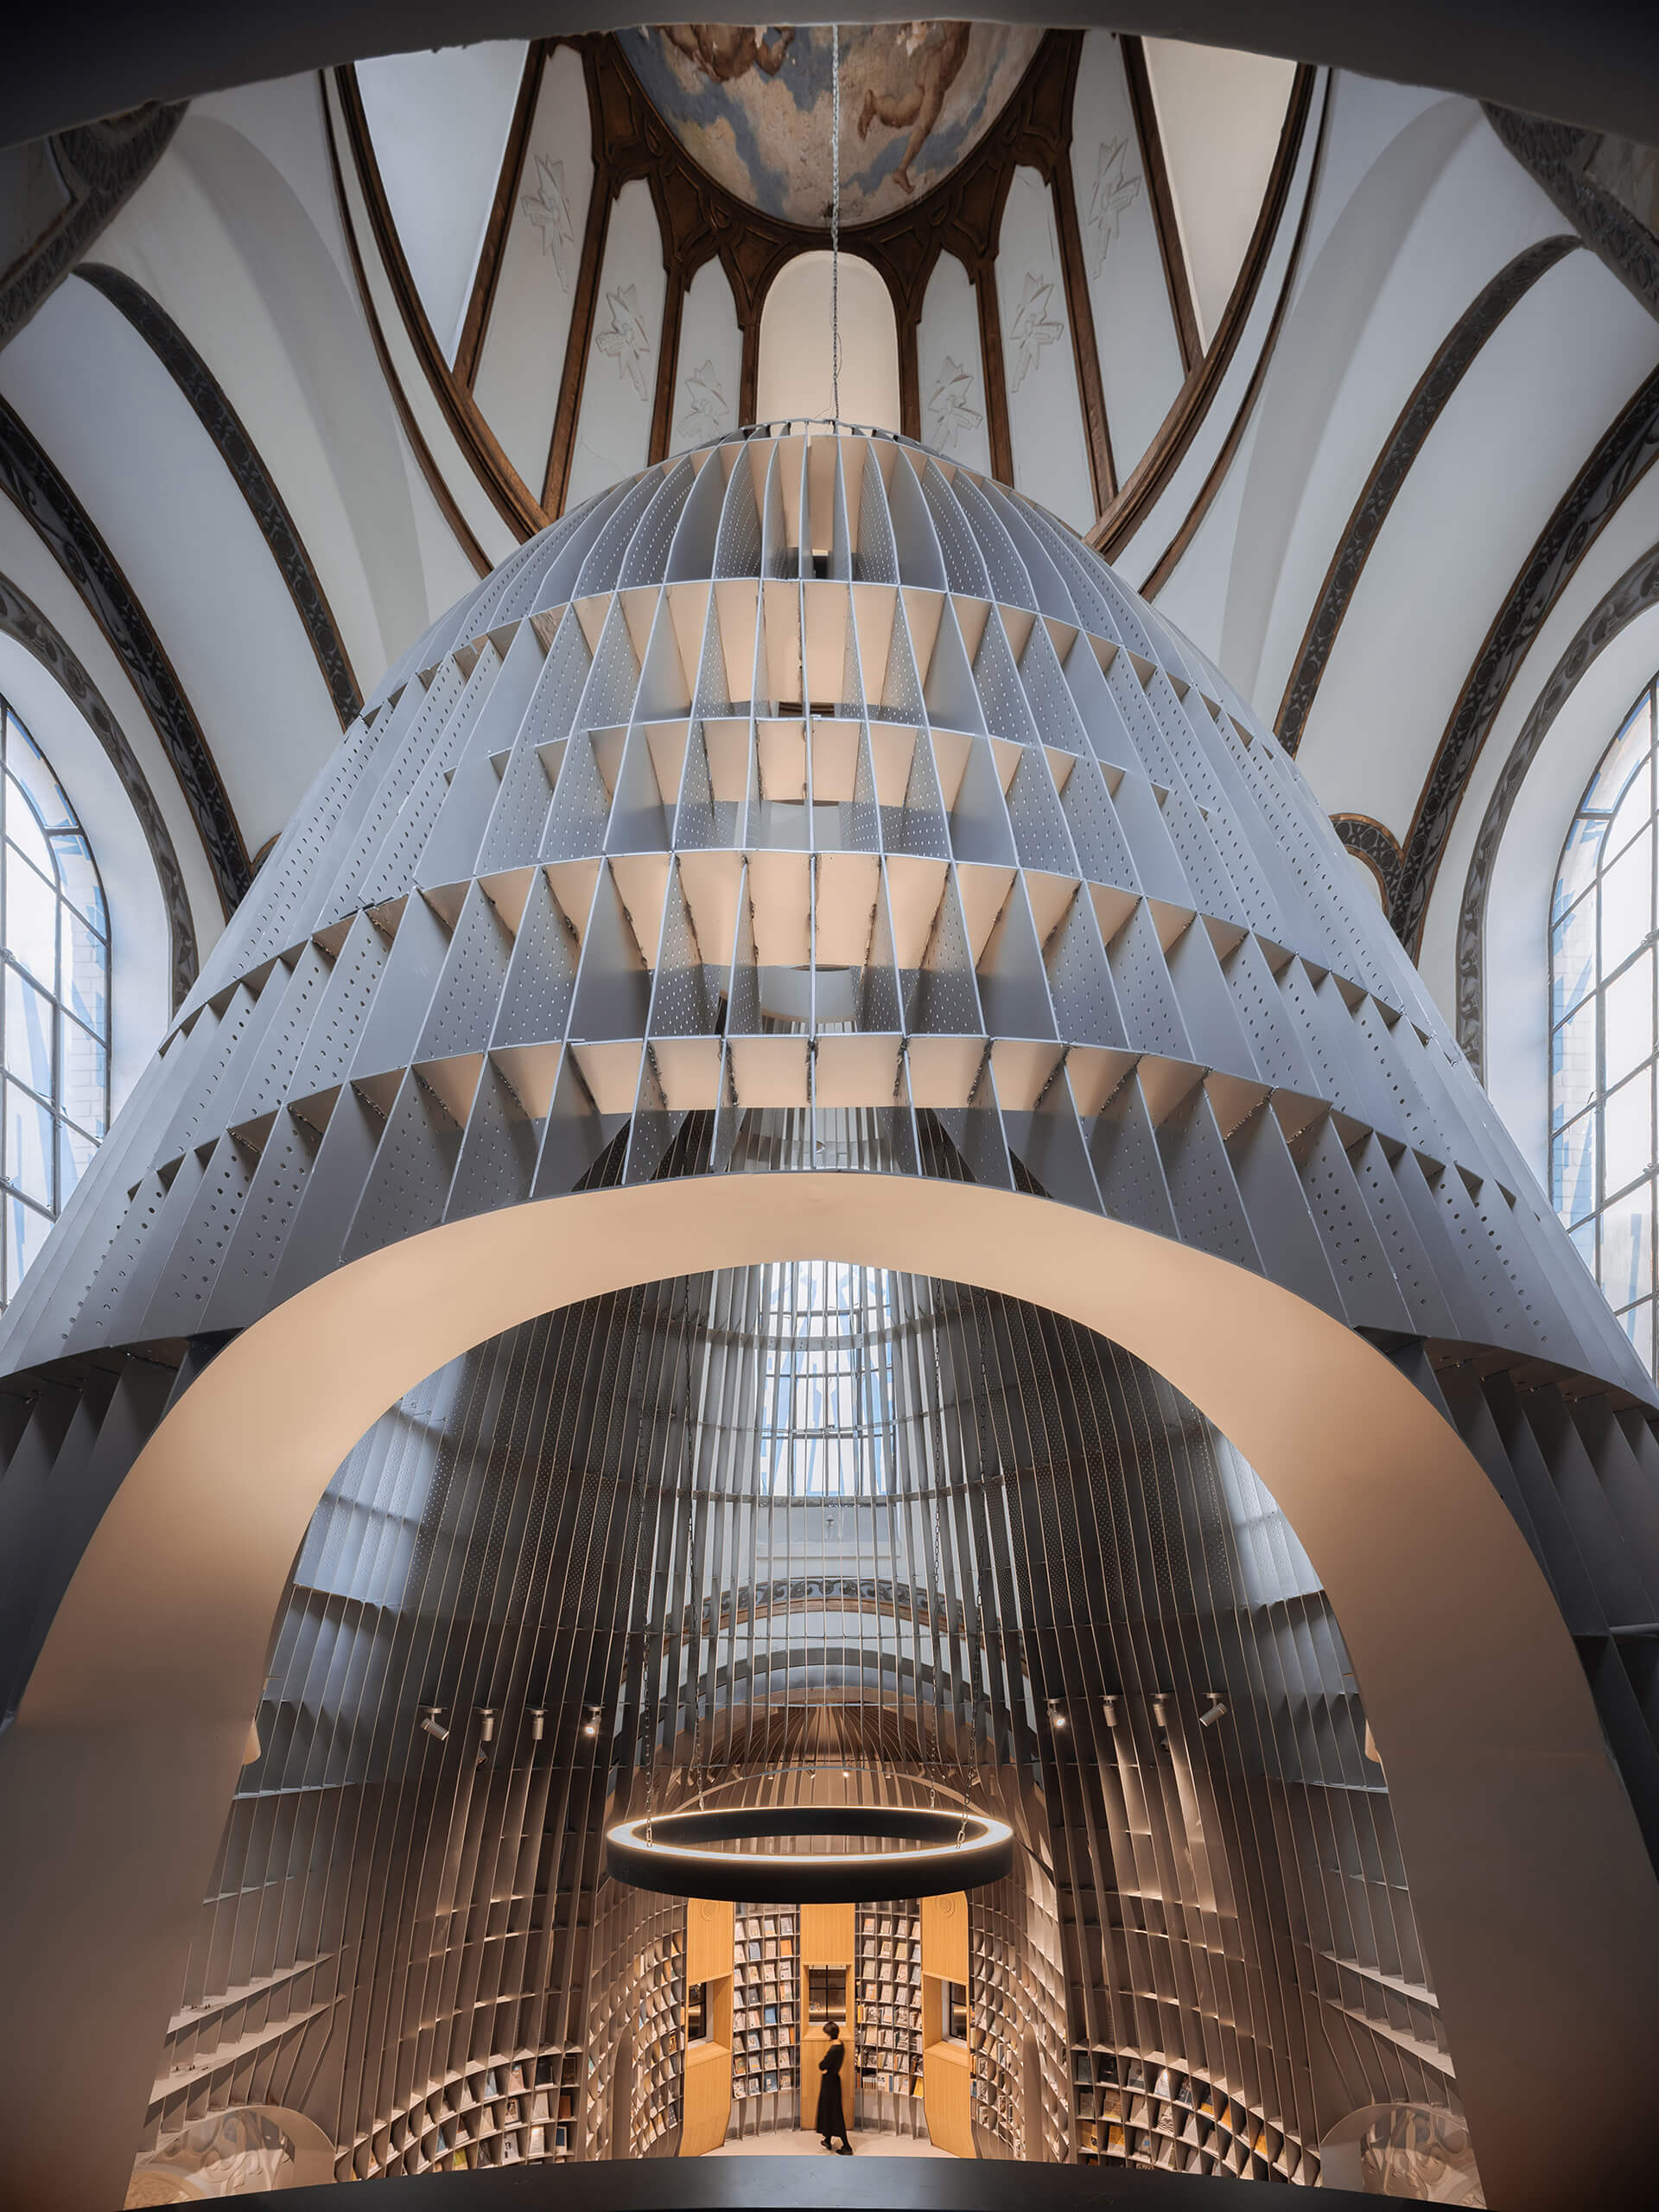 An enormous framework of steel was inserted within the former church | Sinan Books Poetry Store by Wutopia Lab | STIRworld